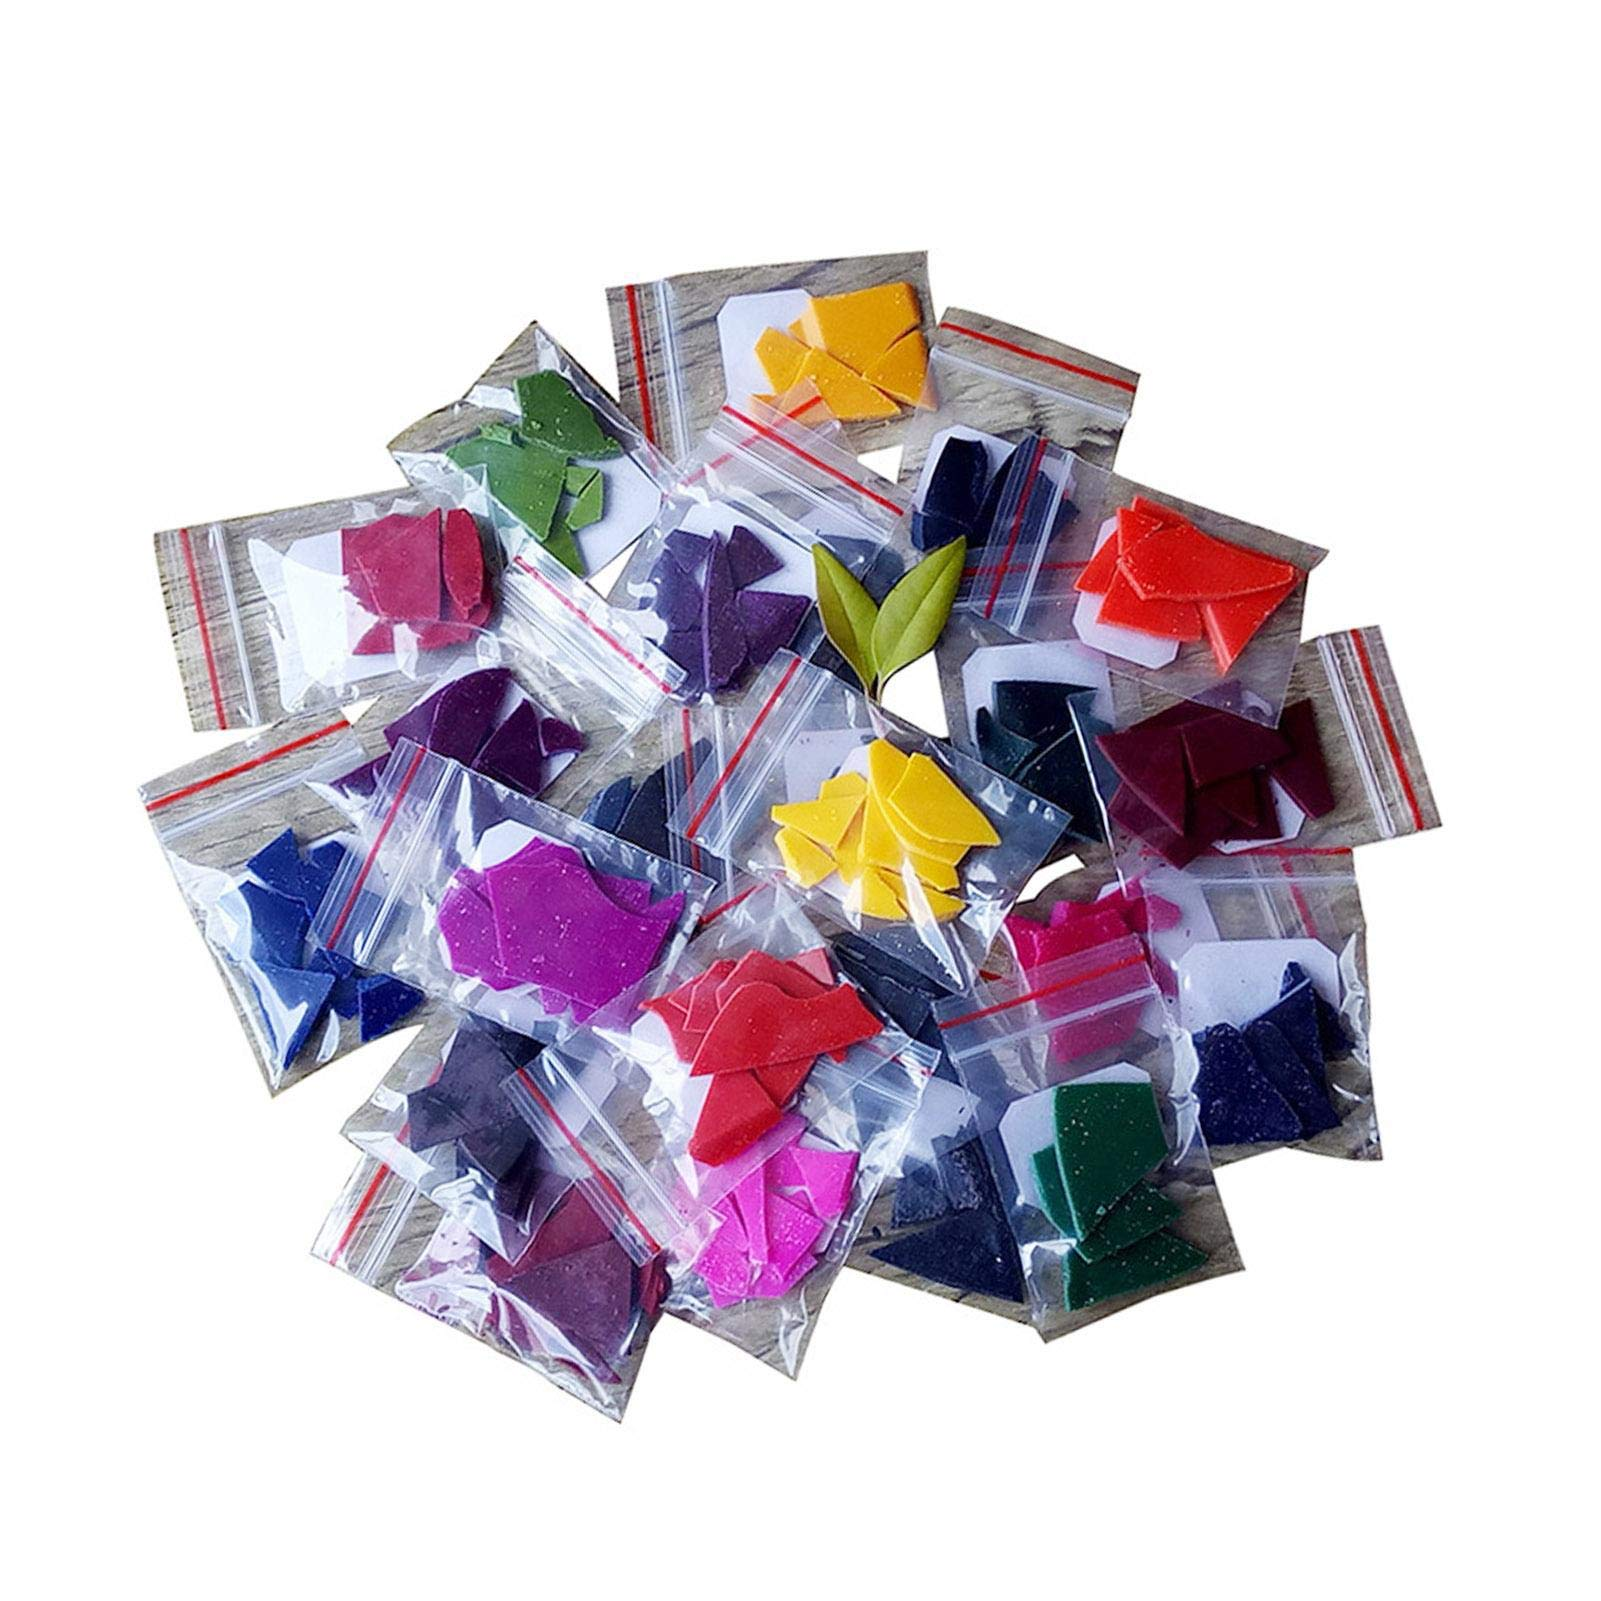 Candle Making Kit Supplies - 24PCS Soy Candle Wax Dye Chips, Soap Making Colouring Dye, for DIY Candle Making Supplies, 5g/Pack